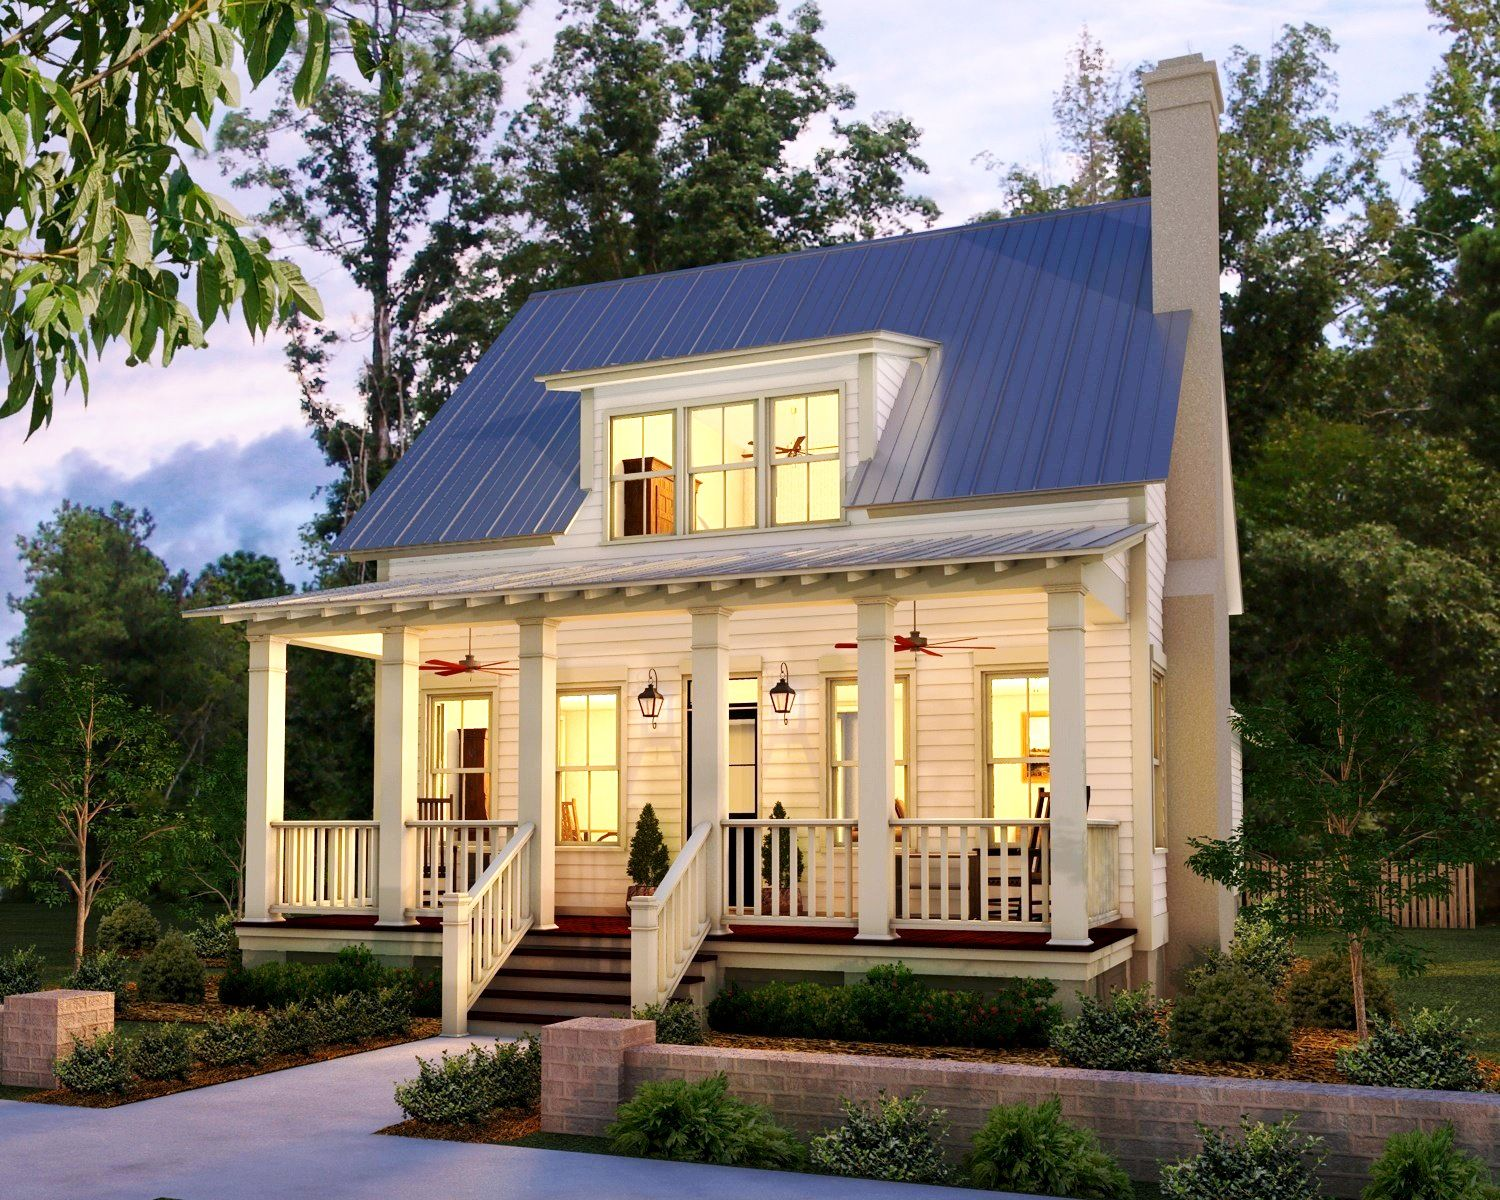 best 25 small cottage homes ideas on pinterest cottages saluda river club collection of homes columbia sc megan ruhlman i found